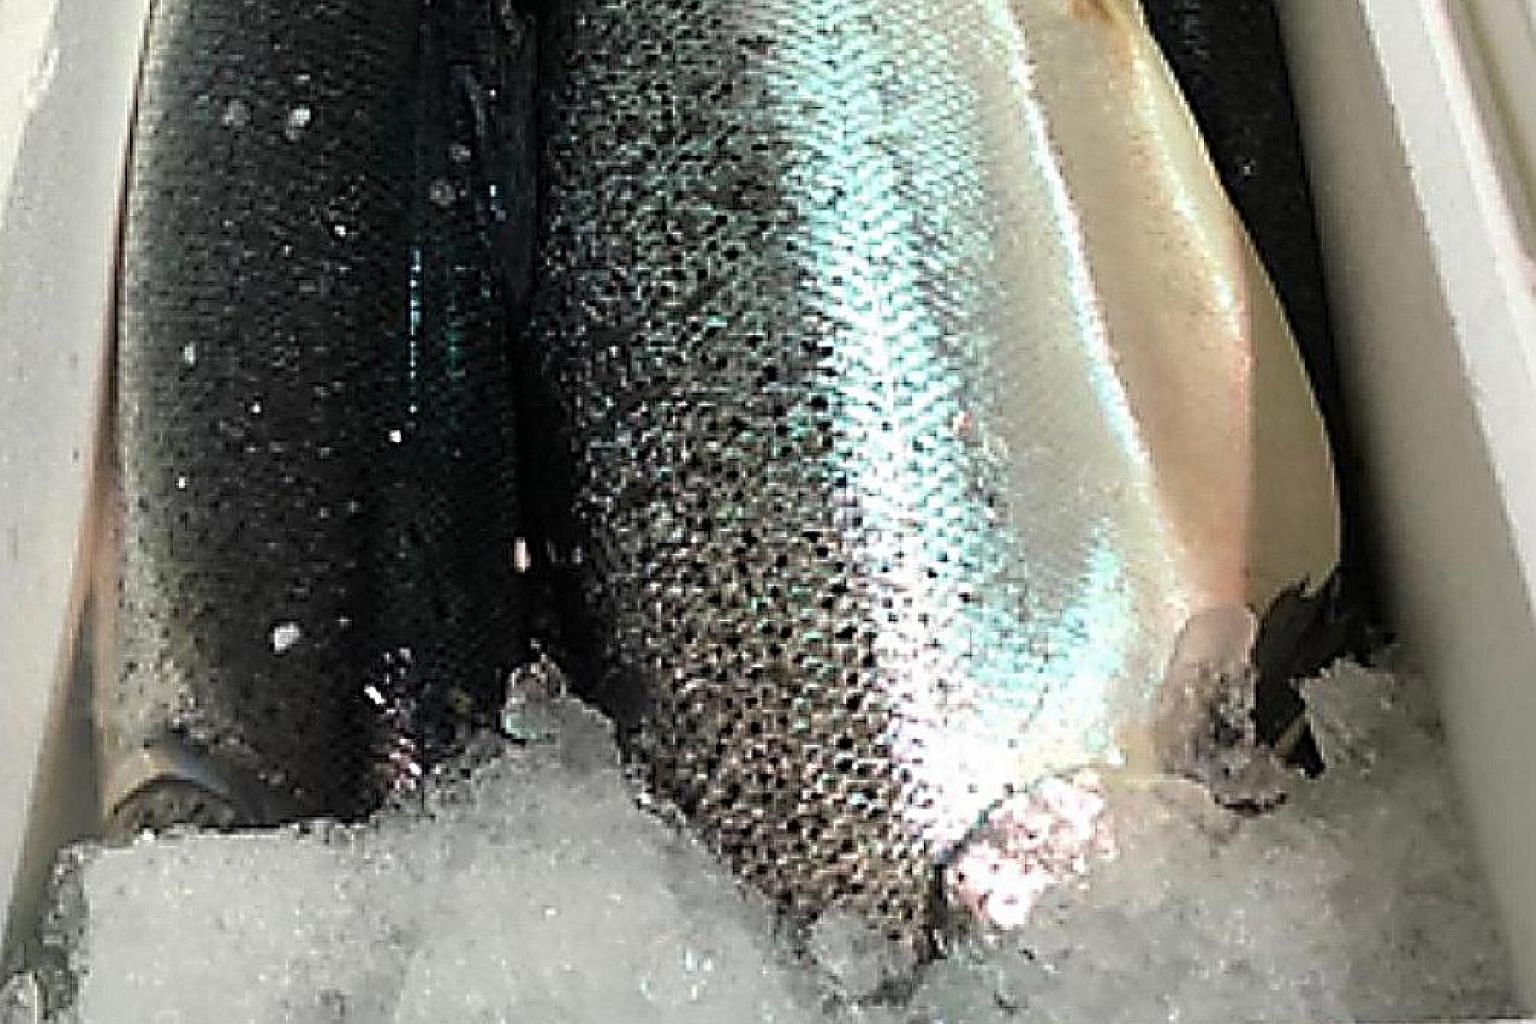 The Singapore Food Agency issued a recall to importer Yu Fish on Wednesday, after it found bacteria in a sample of Norwegian salmon. The Norwegian Seafood Council says it was informed by the Singapore importer that the small strain of bacteria that w